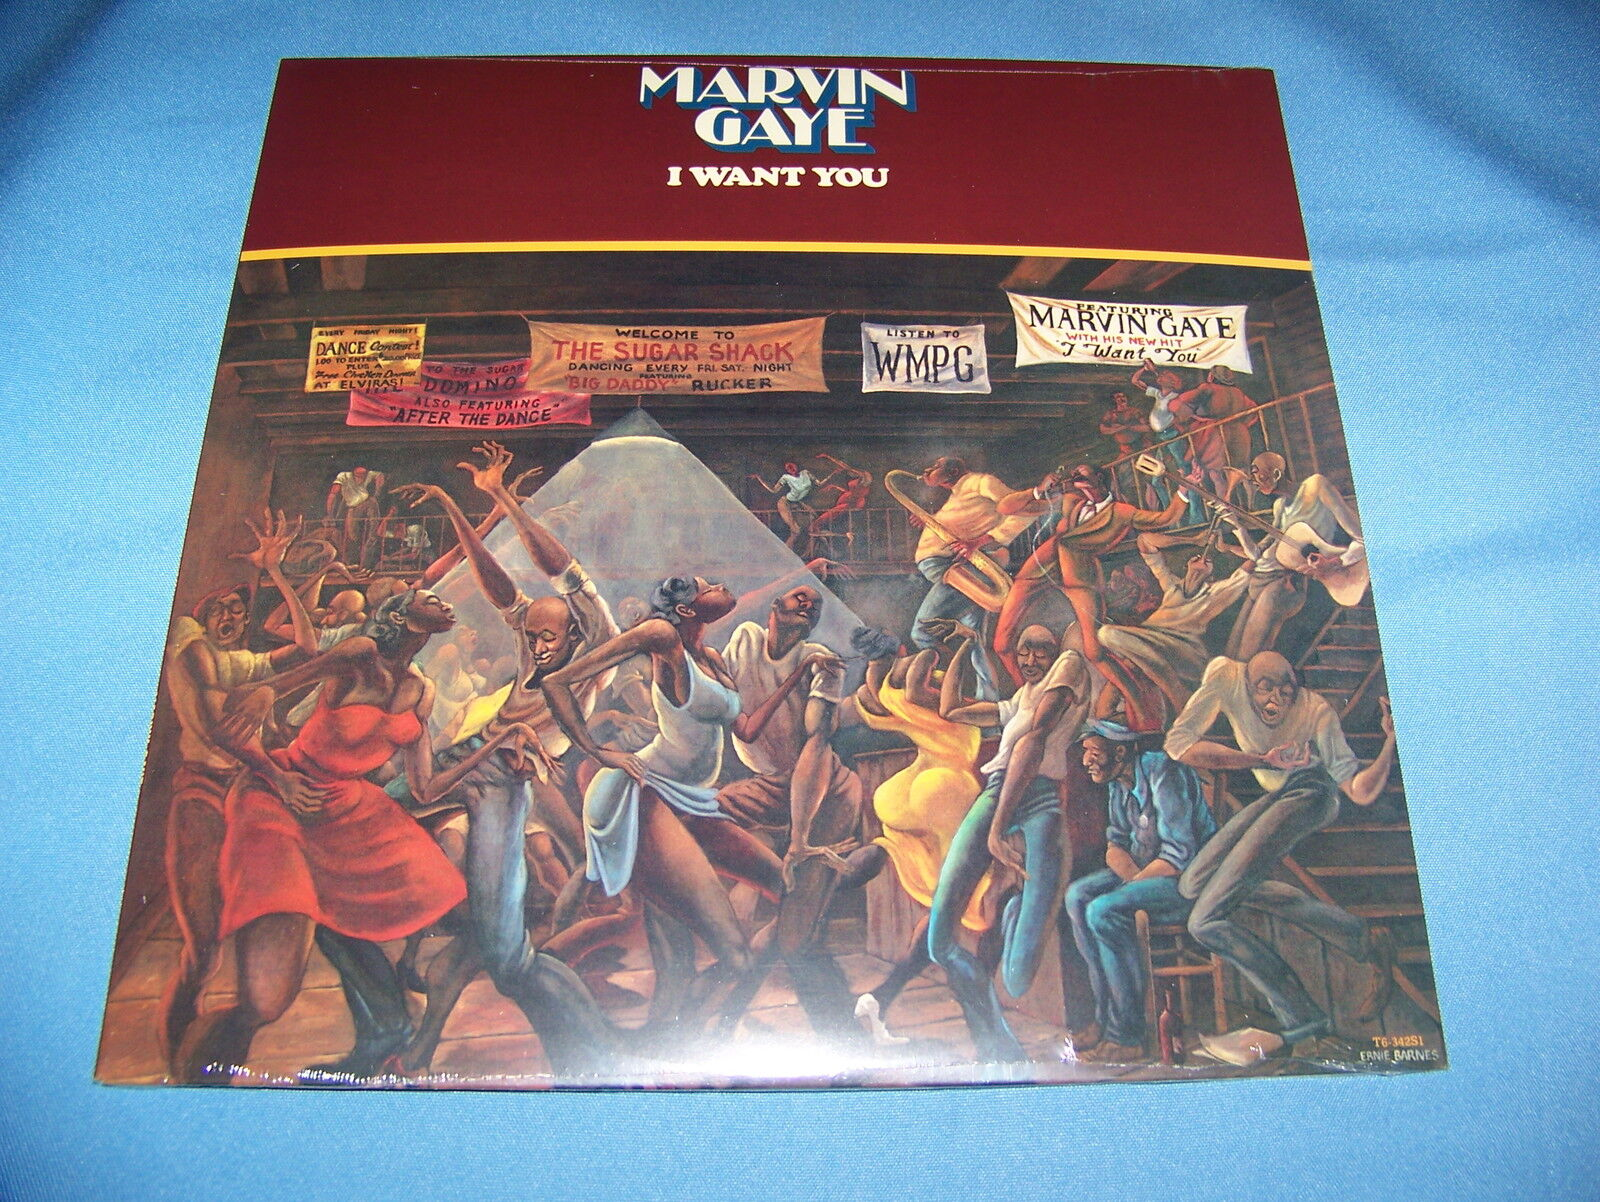 MARVIN GAYE  I WANT YOU V....<br>